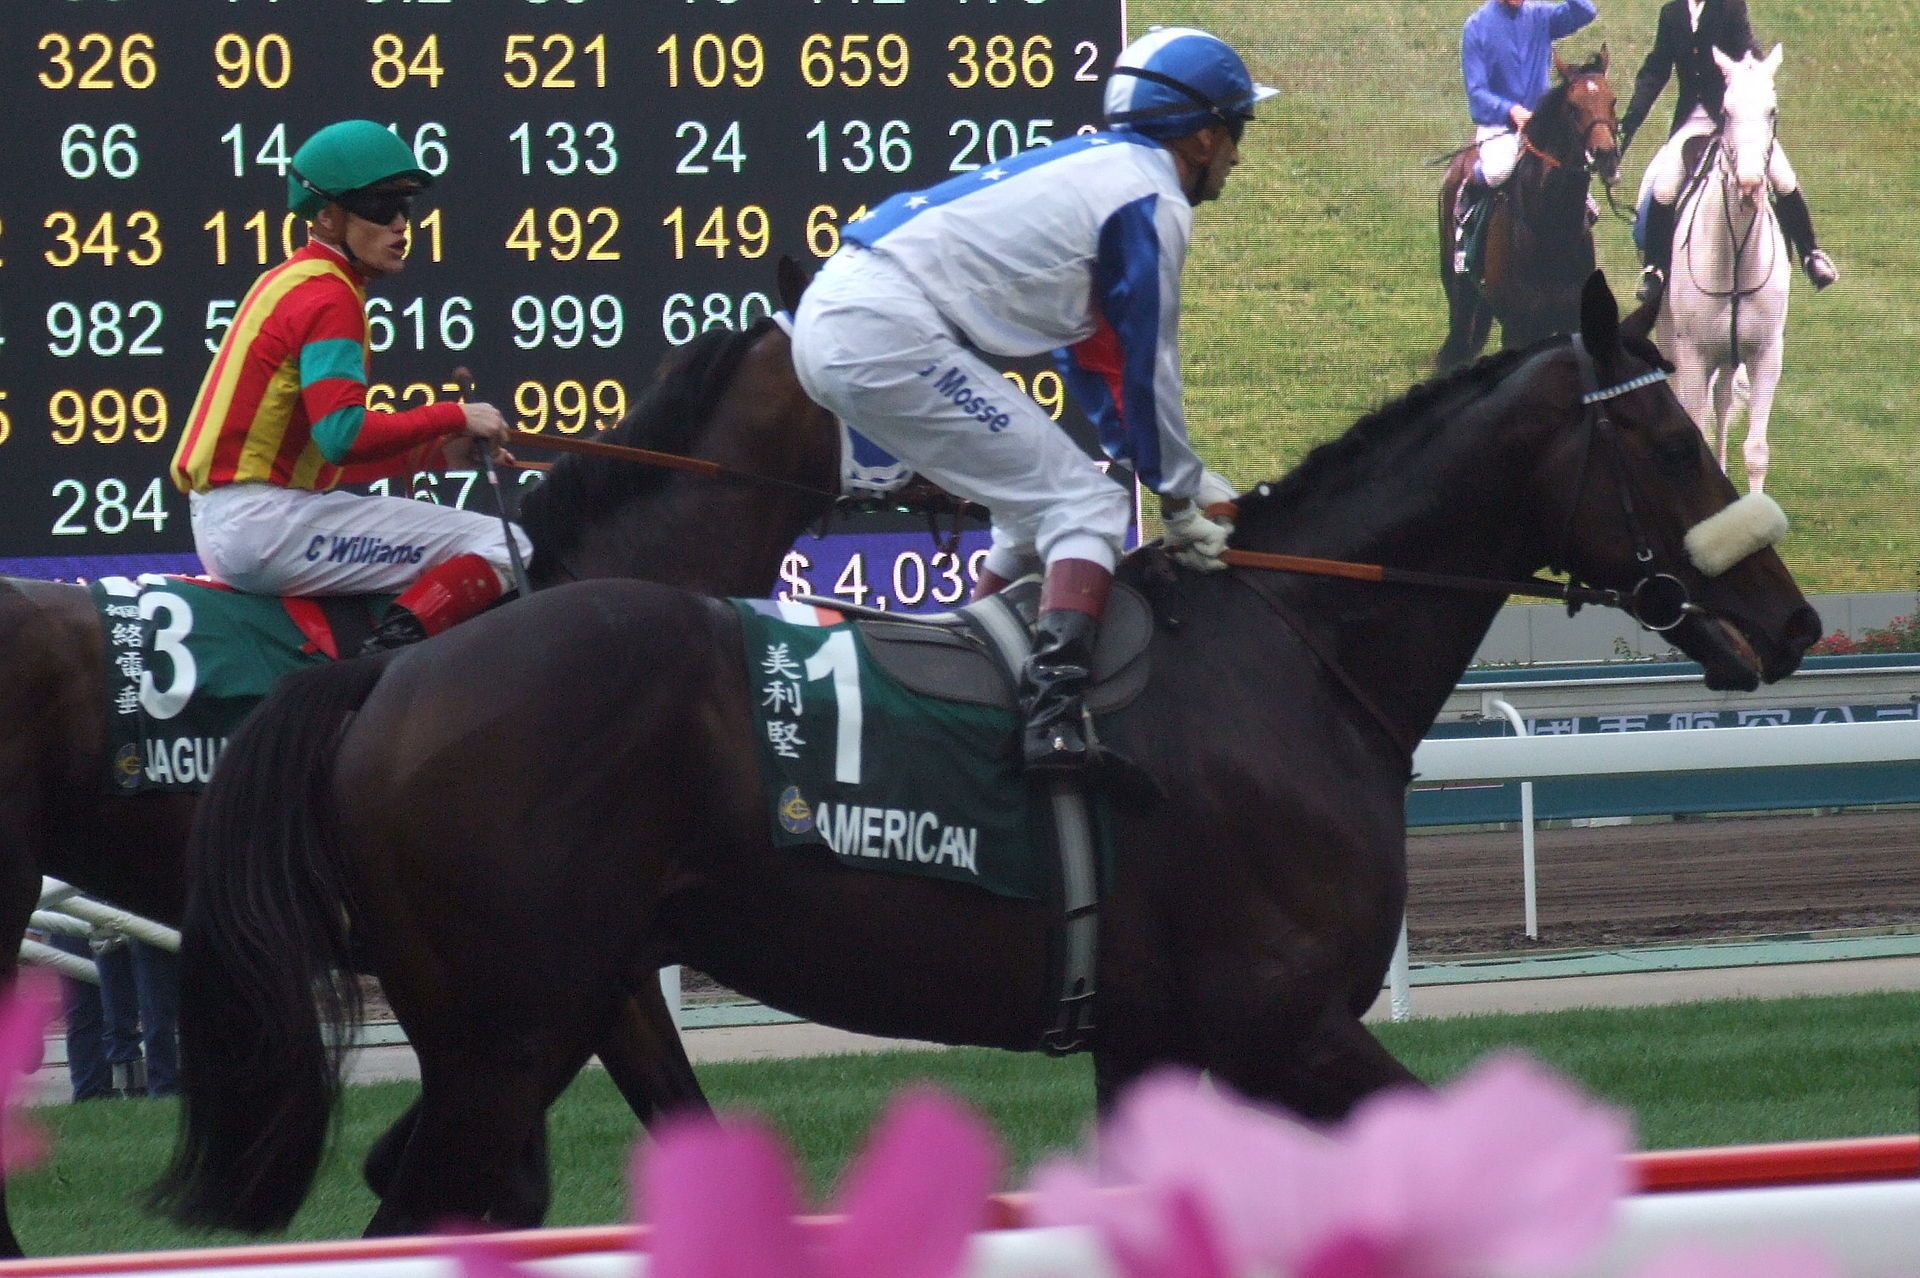 2010 American (horse) List of Melbourne Cup winners